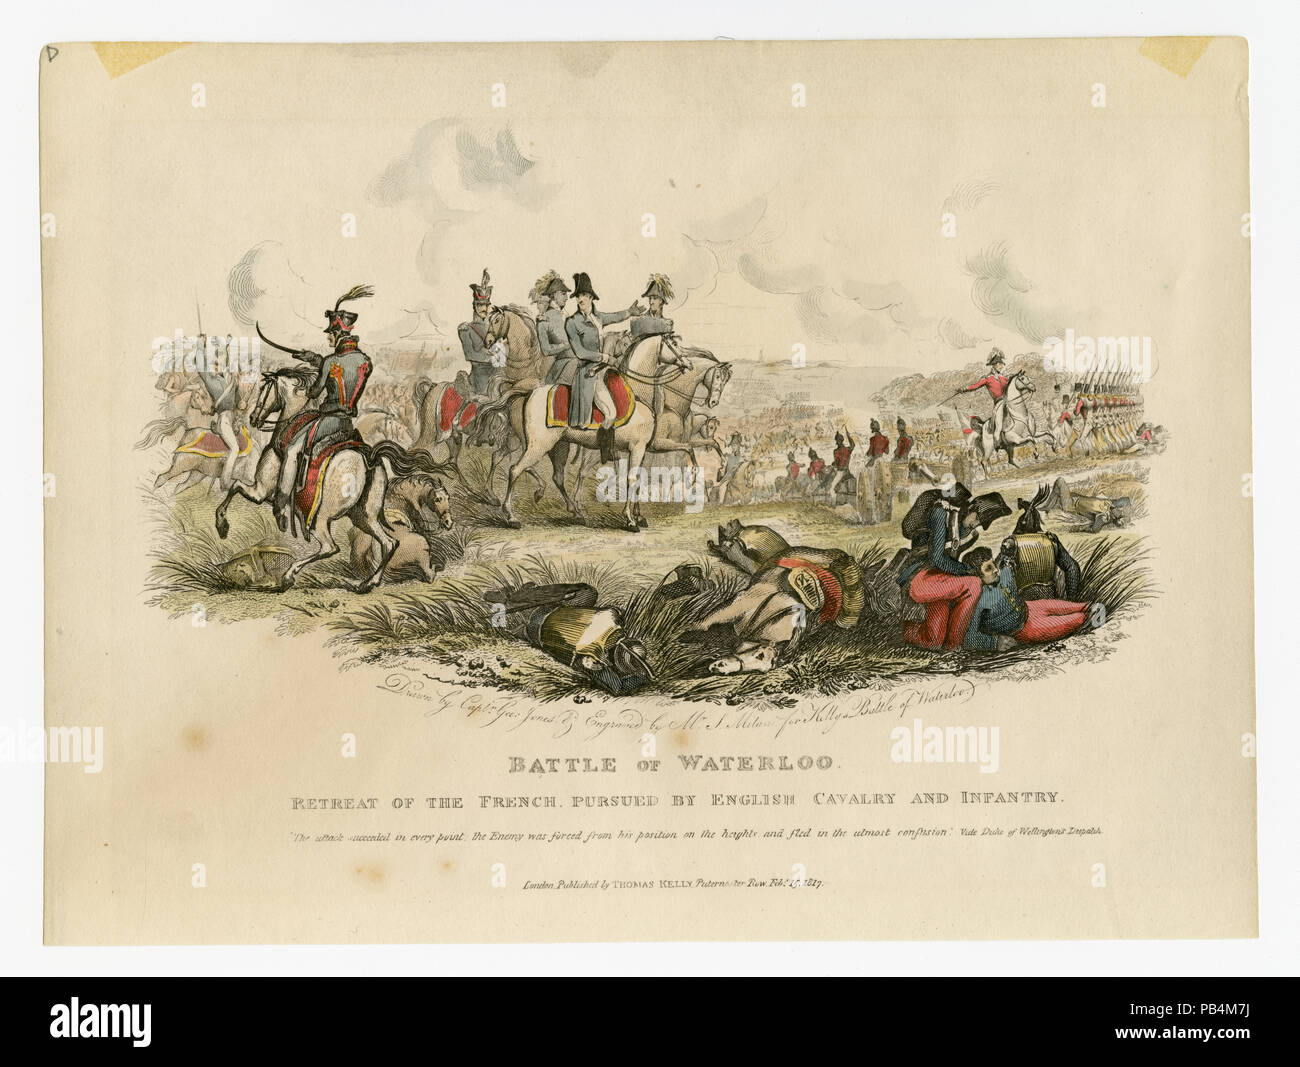 Battle of Waterloo - retreat of the French, pursued by English cavalry and infantry. - Stock Image